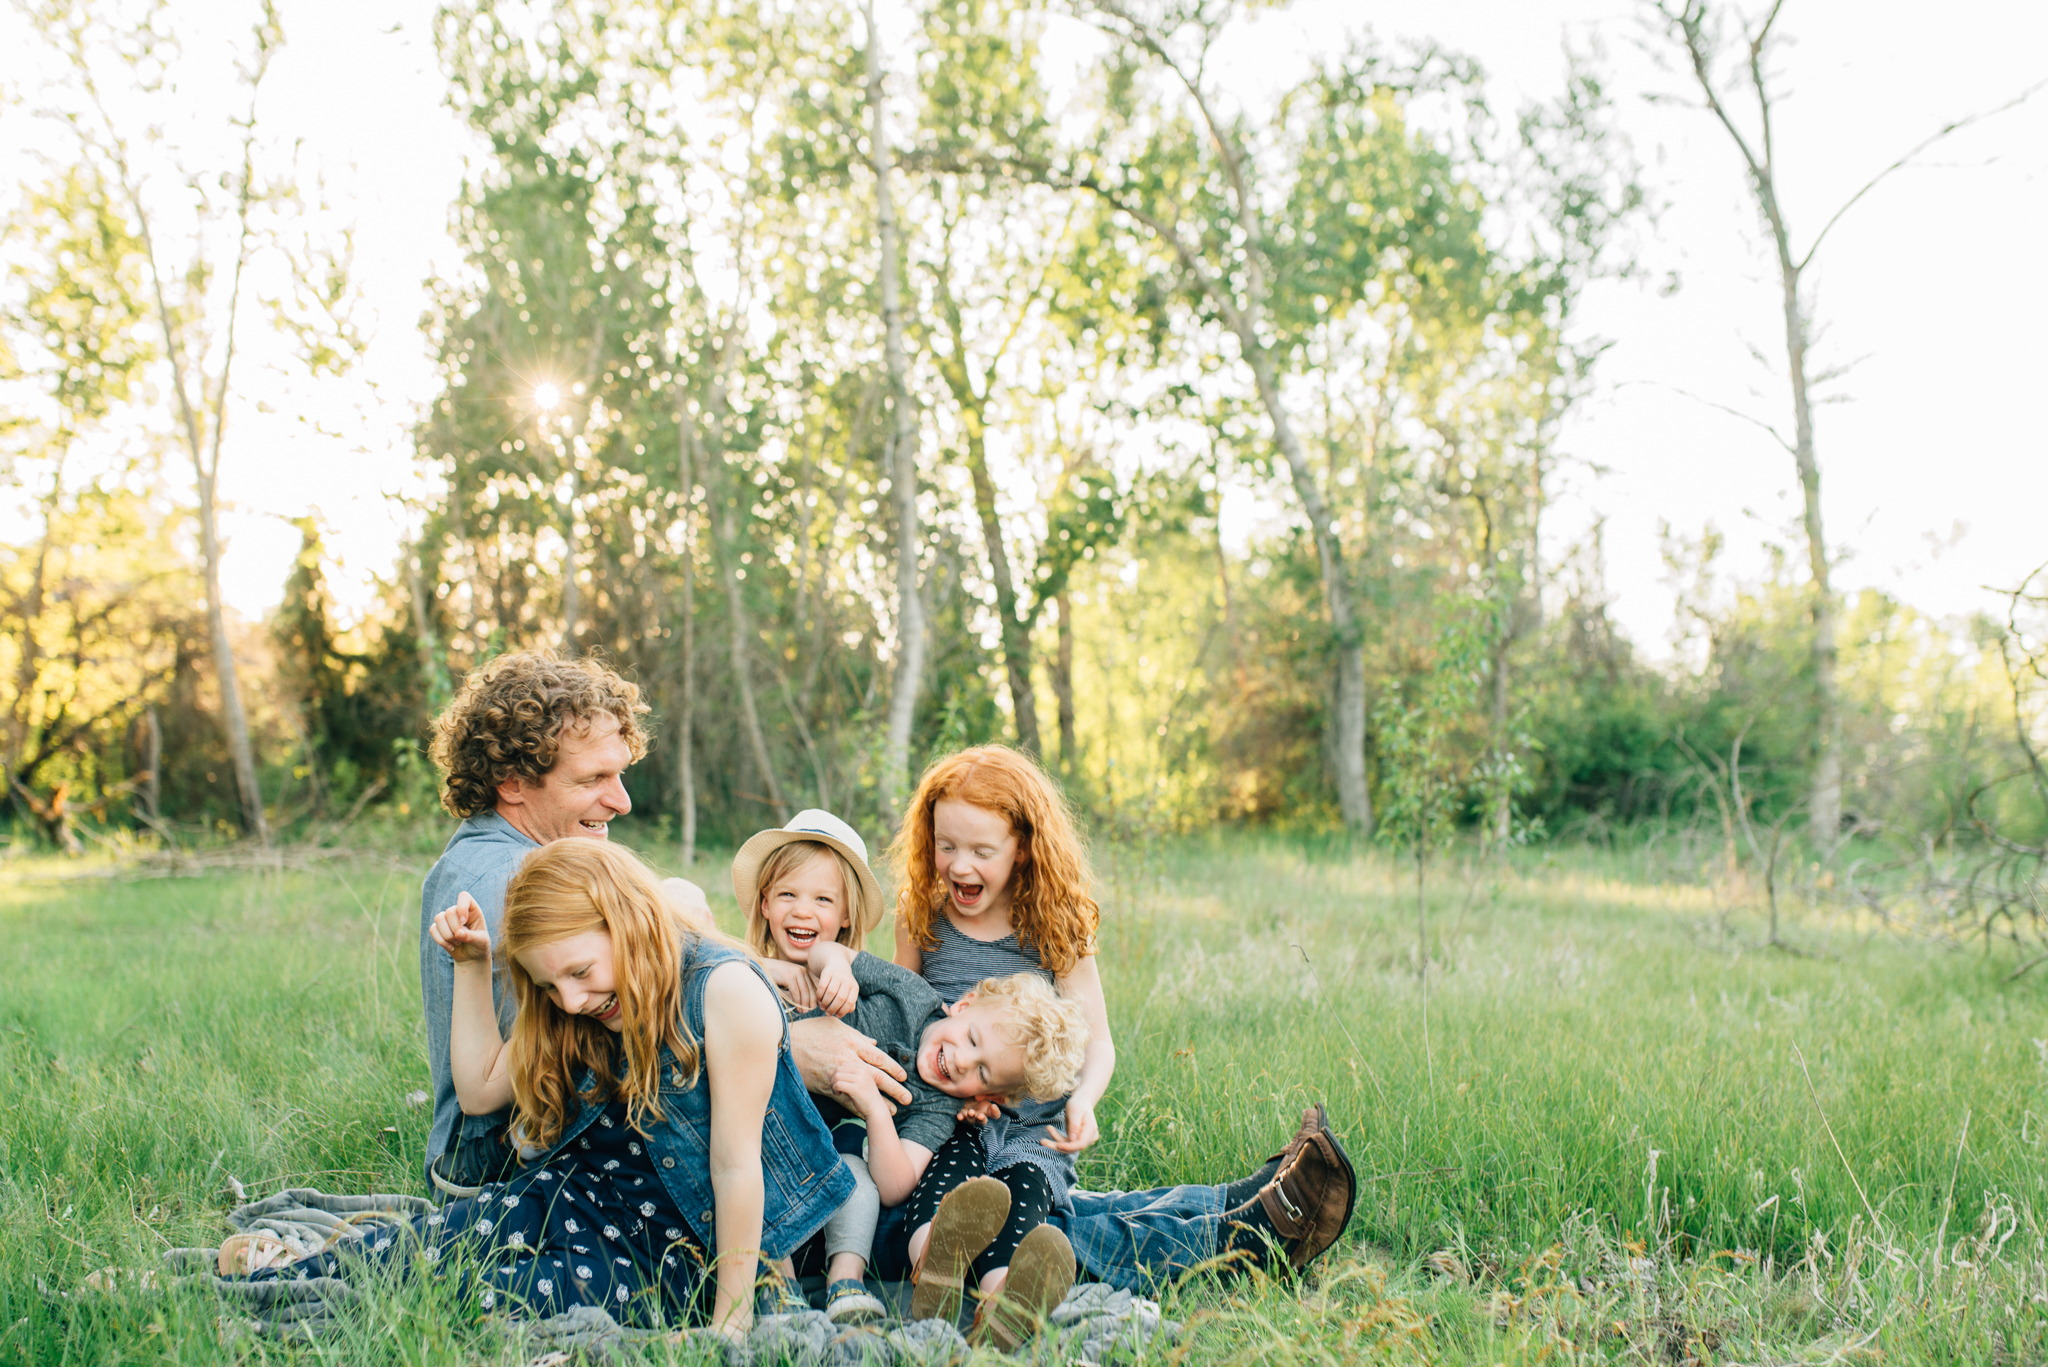 boise family lifestyle session| barber park | boise family photographer | dad and kids during family session